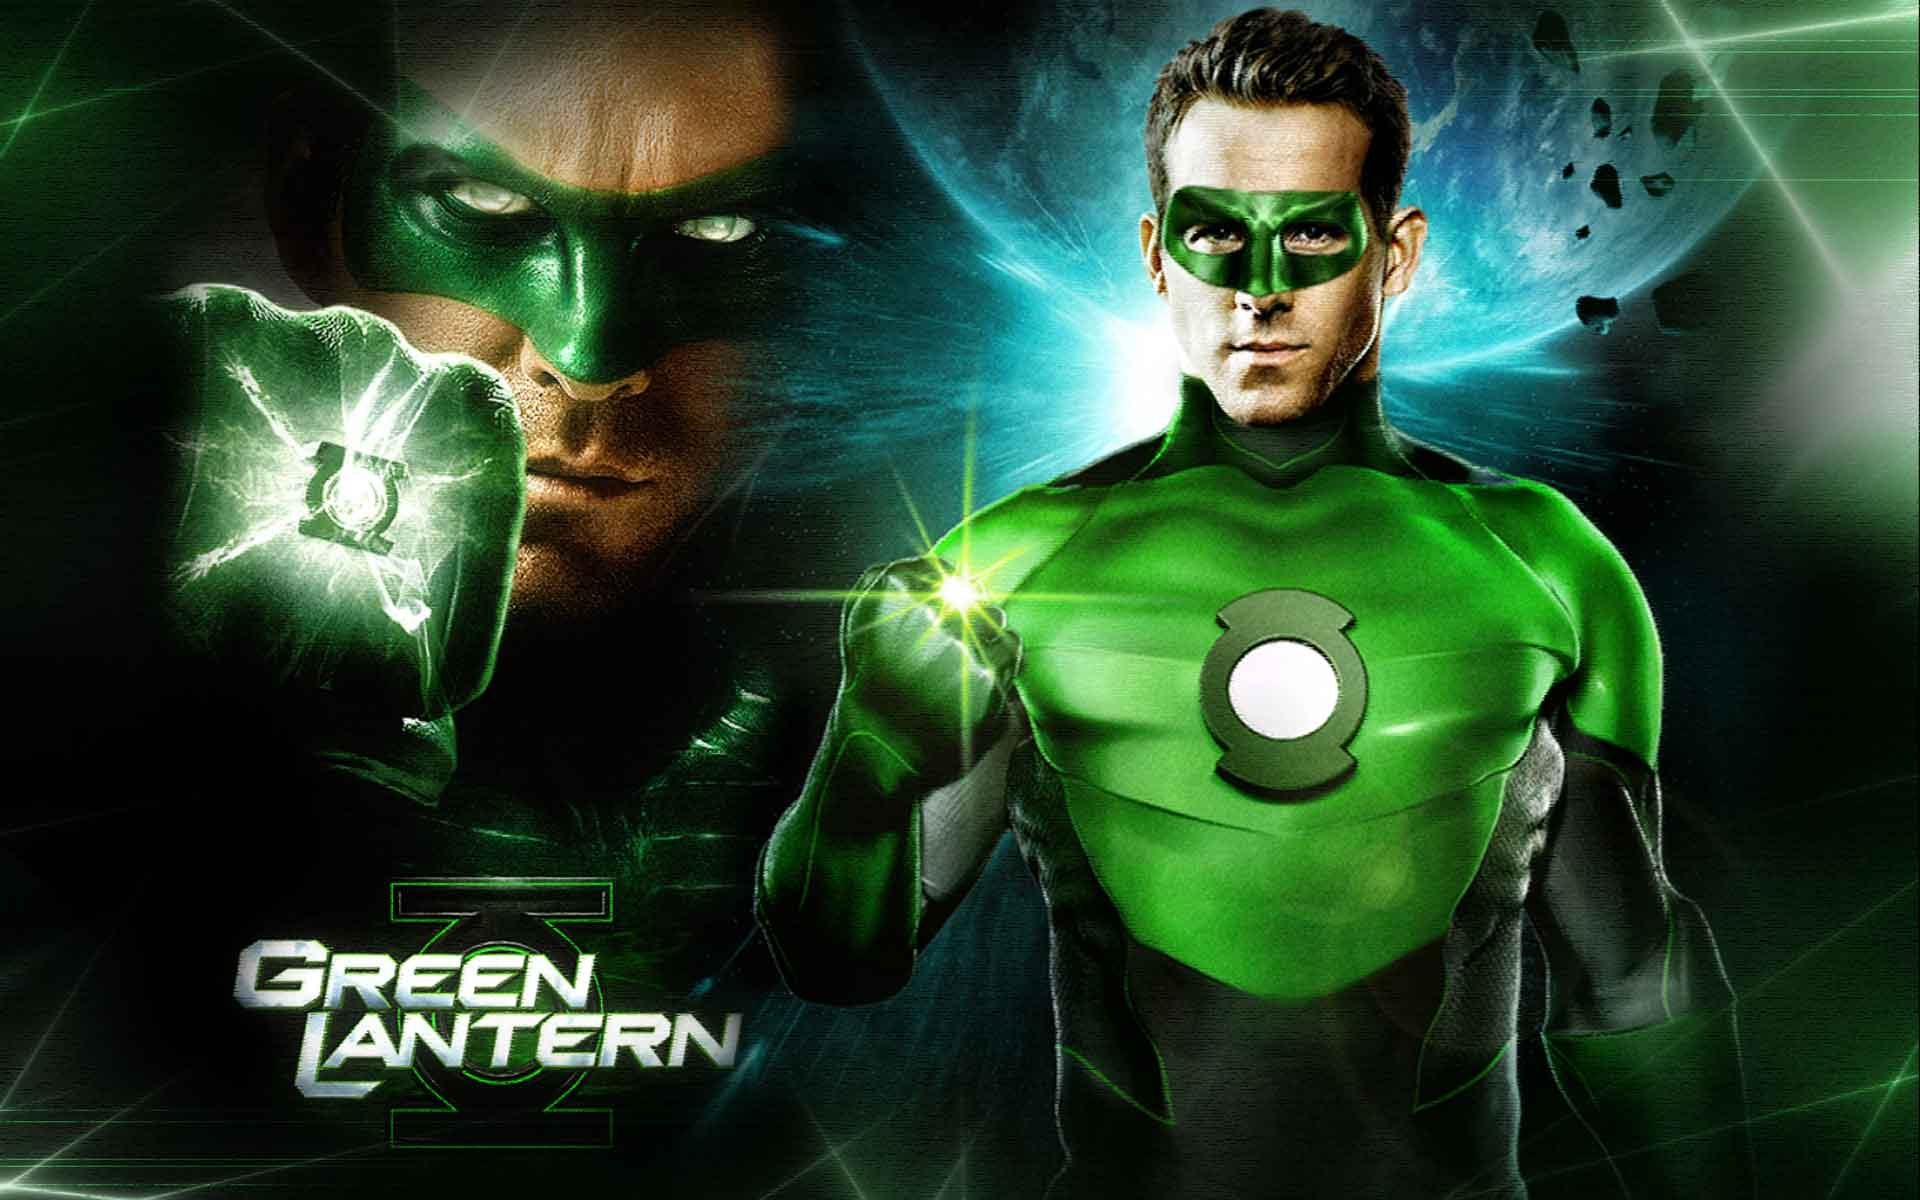 green lantern movie wallpapers - wallpaper cave